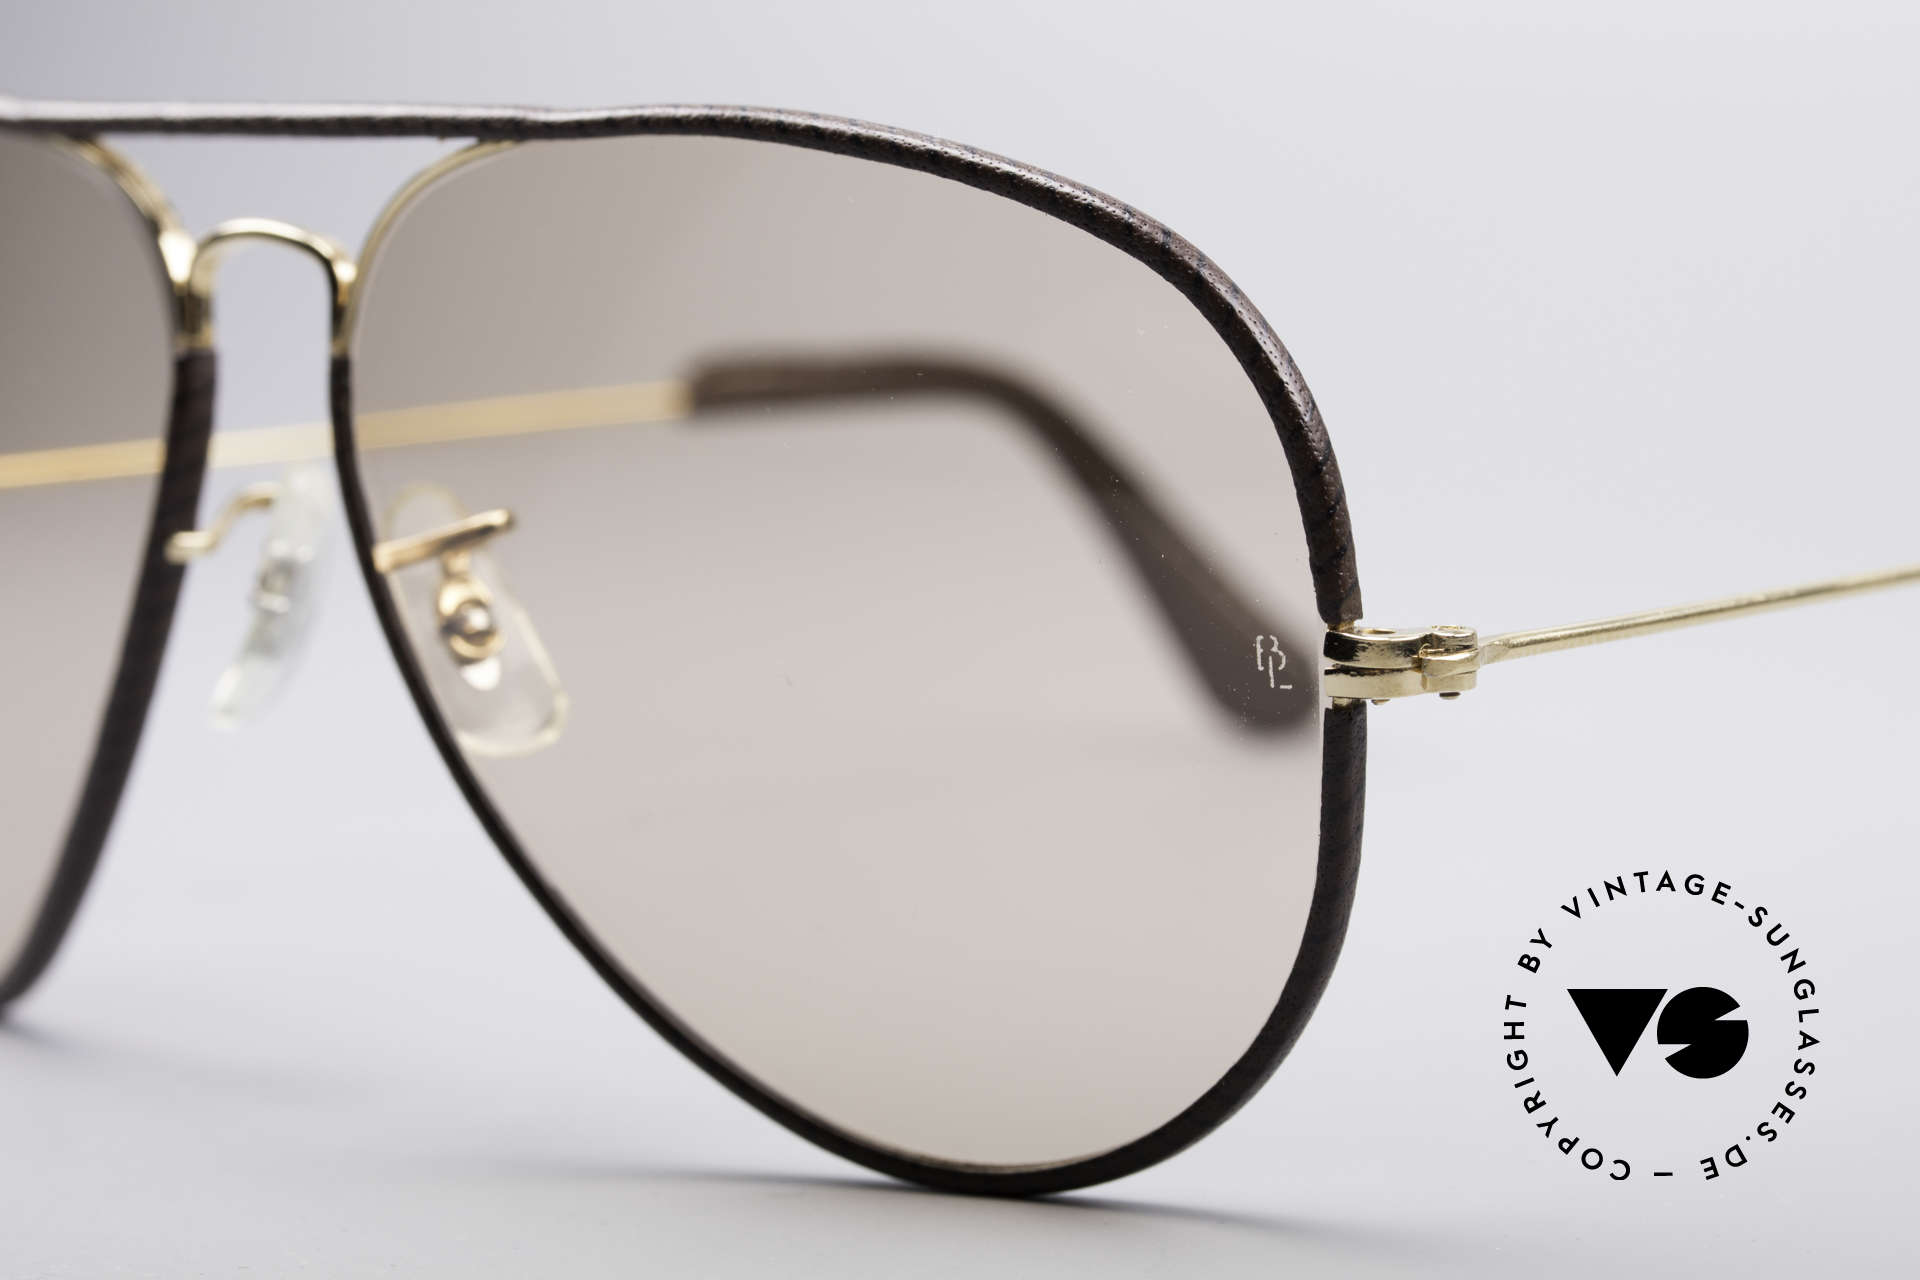 Ray Ban Large Metal II Leathers Changeable USA, high-end B&L changeable lenses (darken automatically), Made for Men